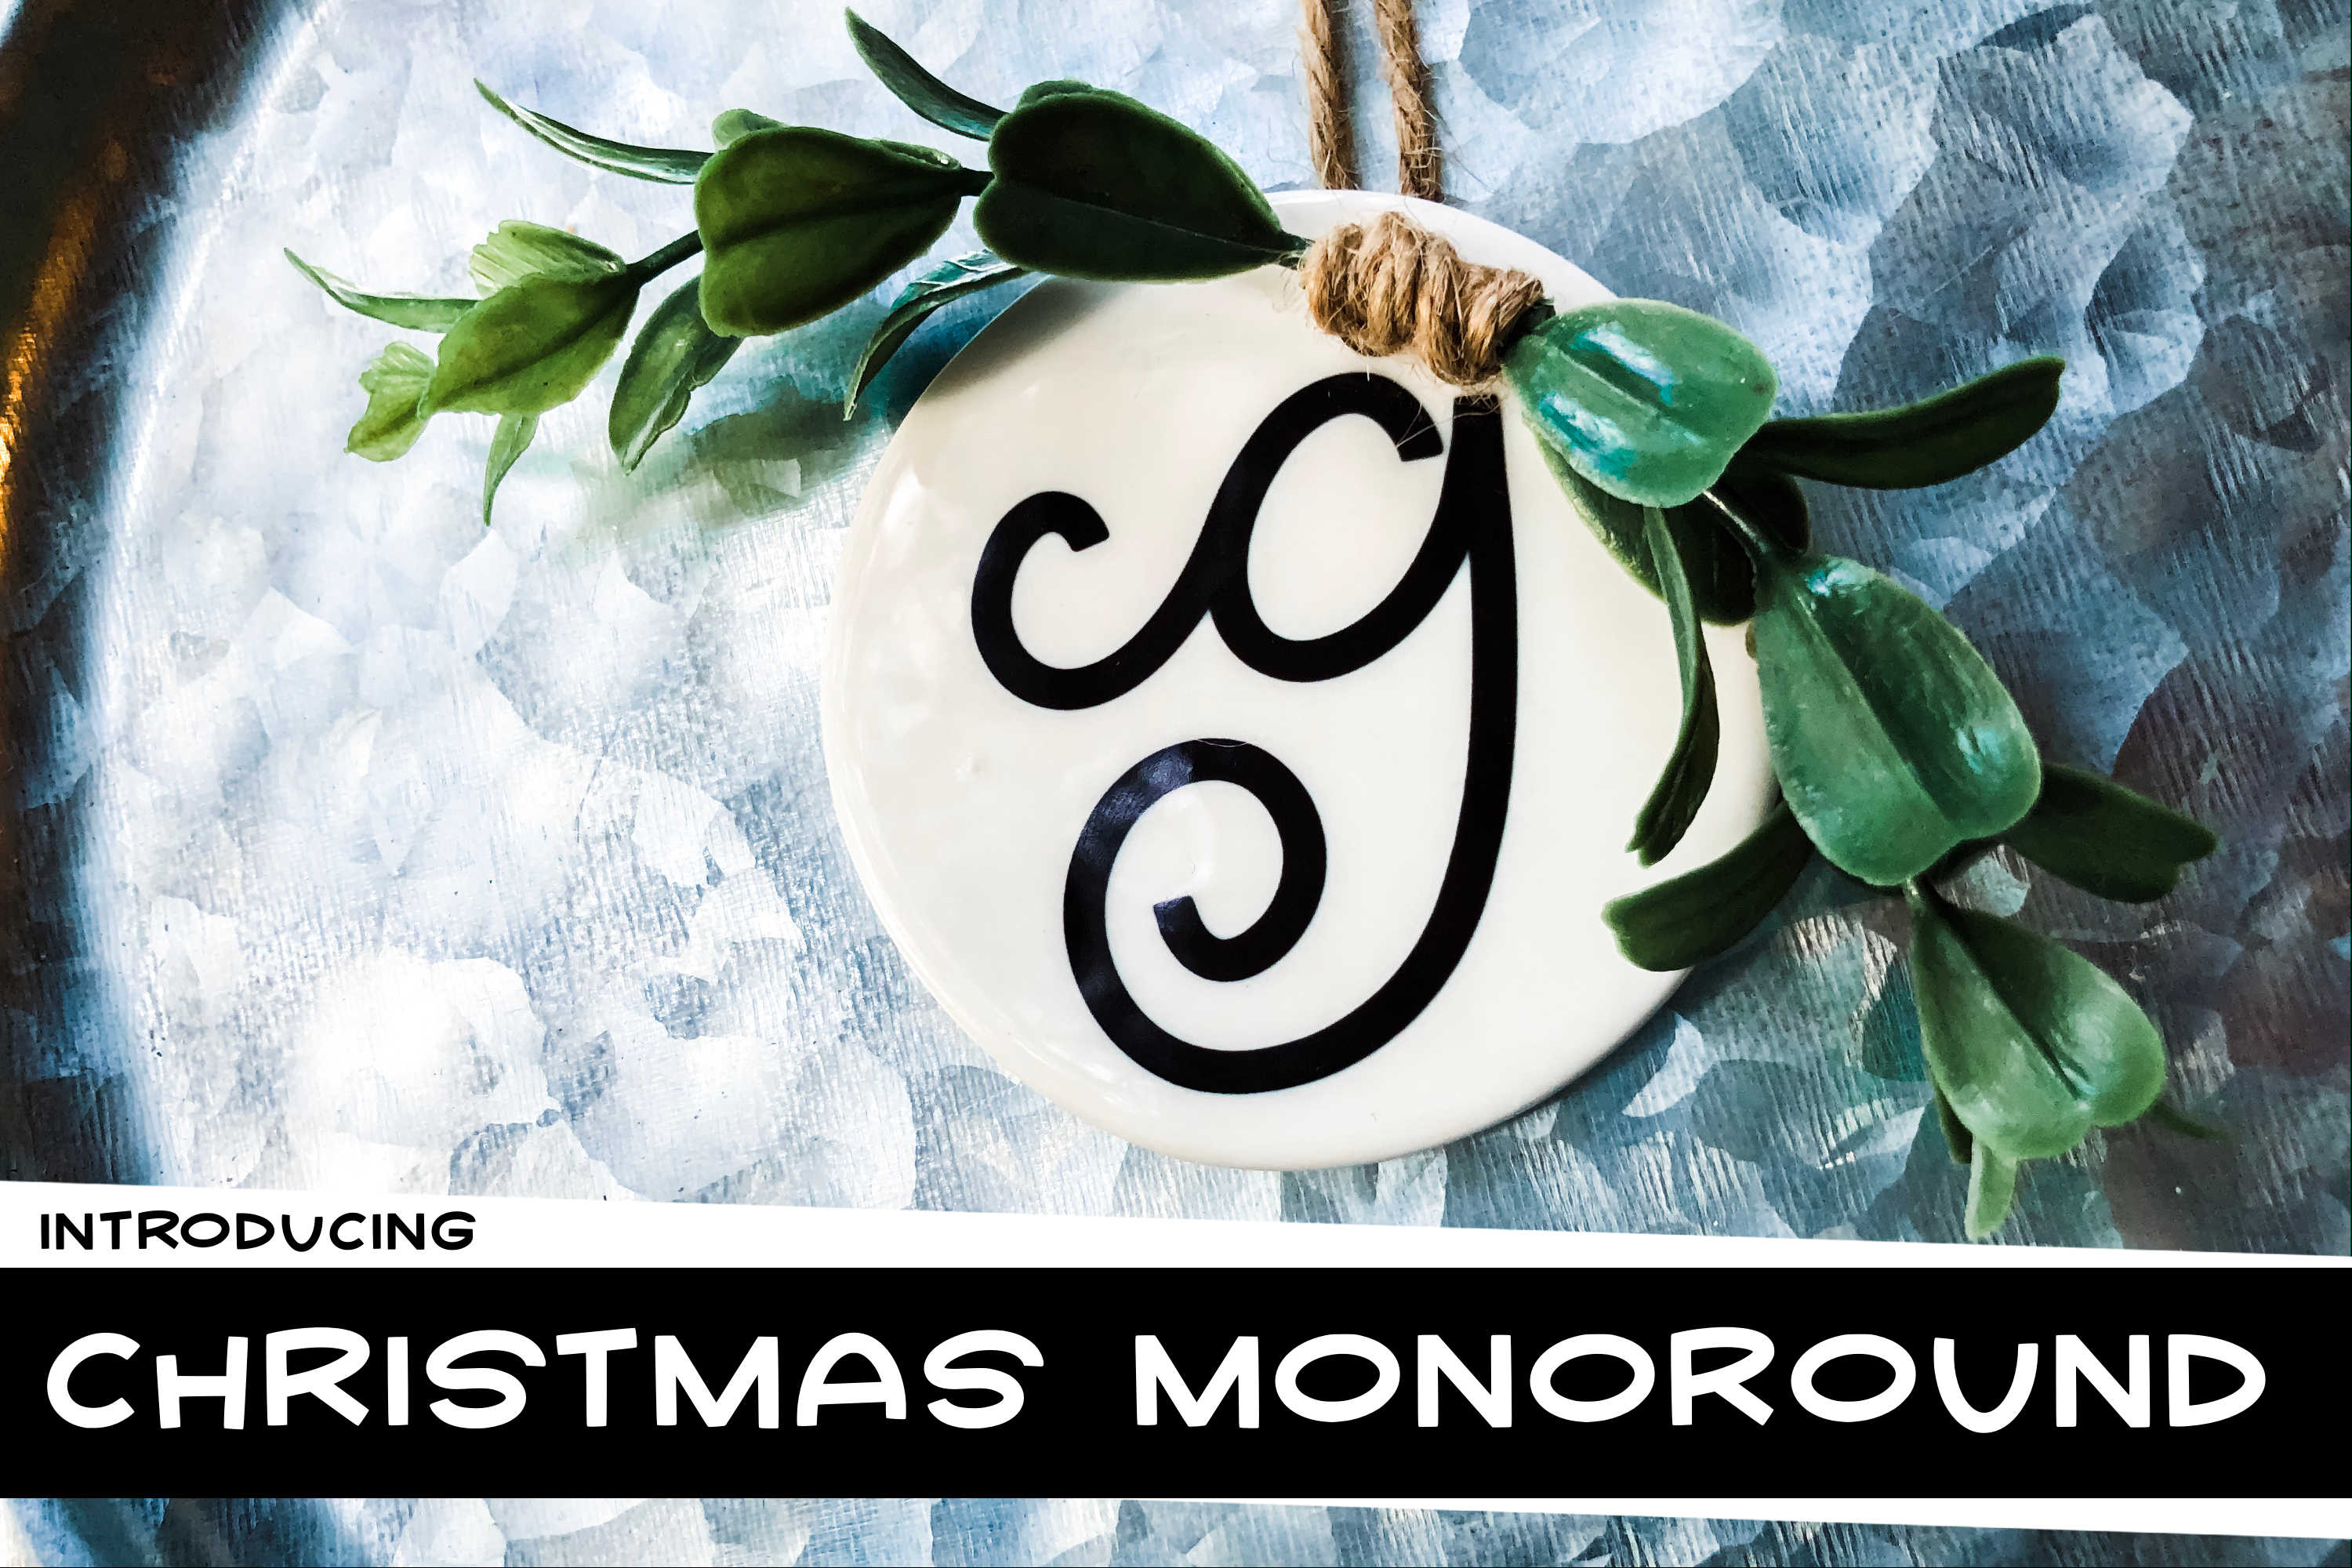 Christmas Monoround a Monogram Font example image 1